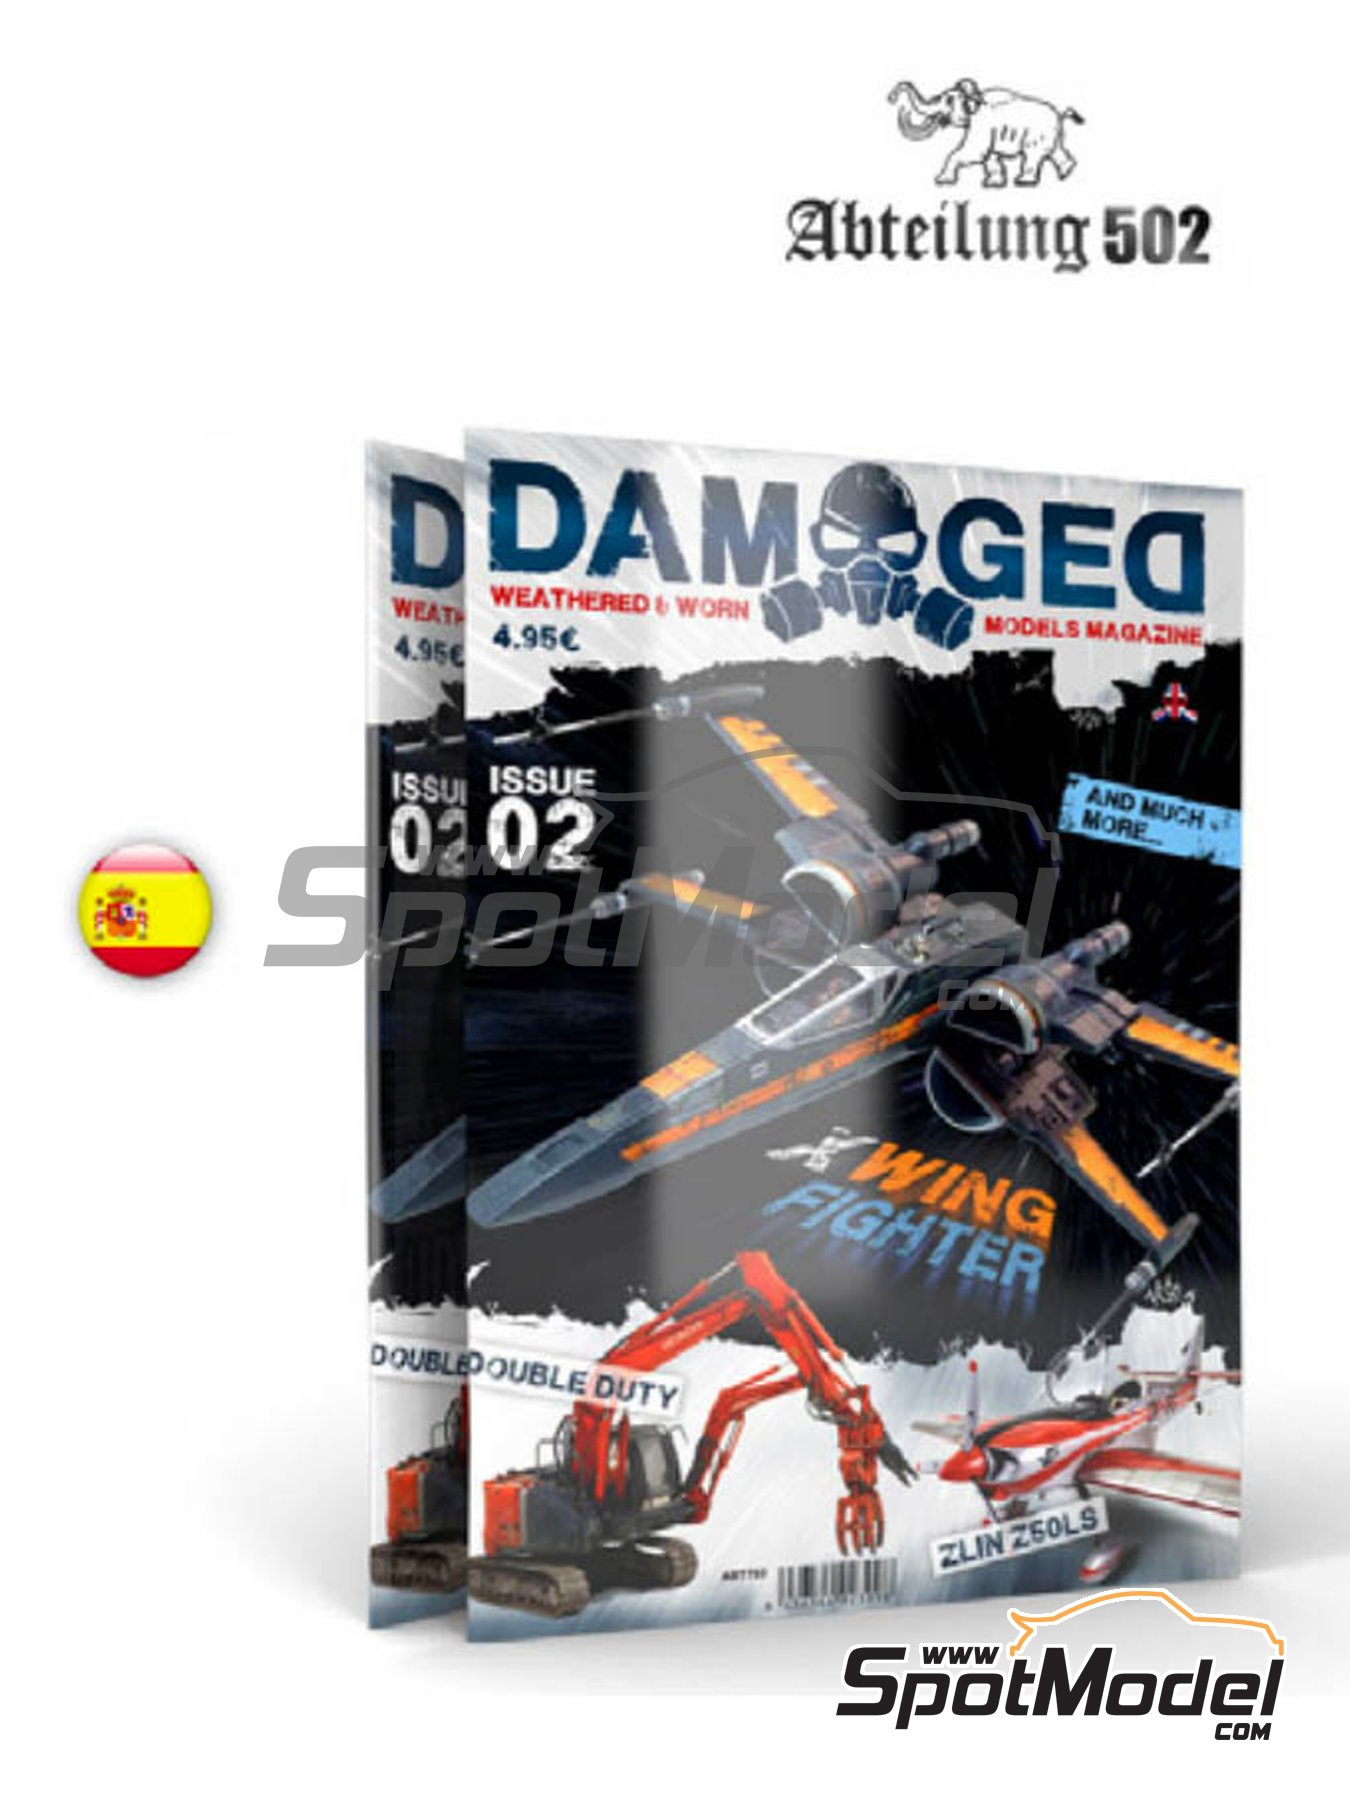 Damaged - Weathered and worn: Número 2 - edición en castellano | Revista fabricado por AK Interactive (ref. ABT704) image